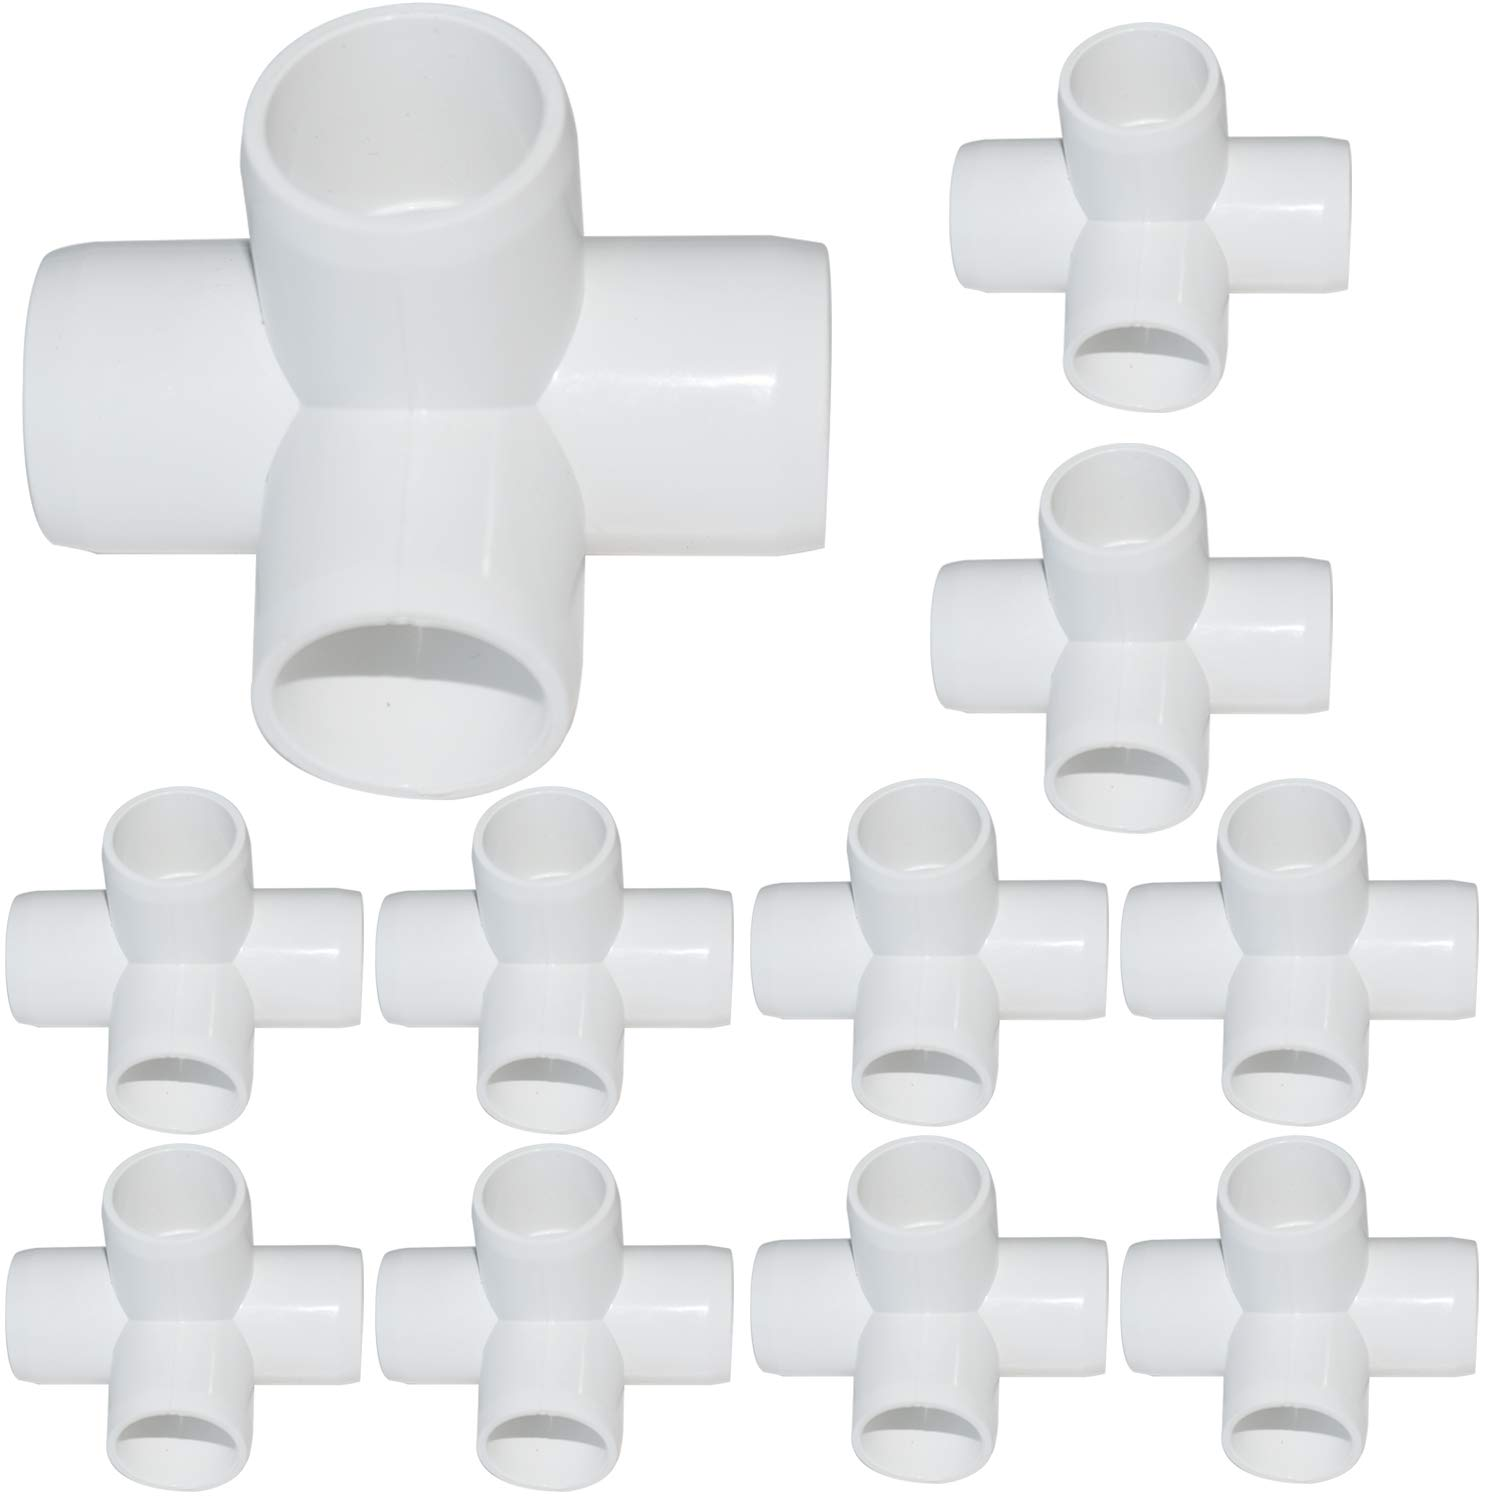 15Pack 3/4Inch 4 Way PVC Fittings, Heavy Duty PVC Elbow Side Outlet Tees, Furniture PVC Tee Corner Fittings for Building PVC Furniture Greenhouse Shed Pipe Fittings Tent Connection